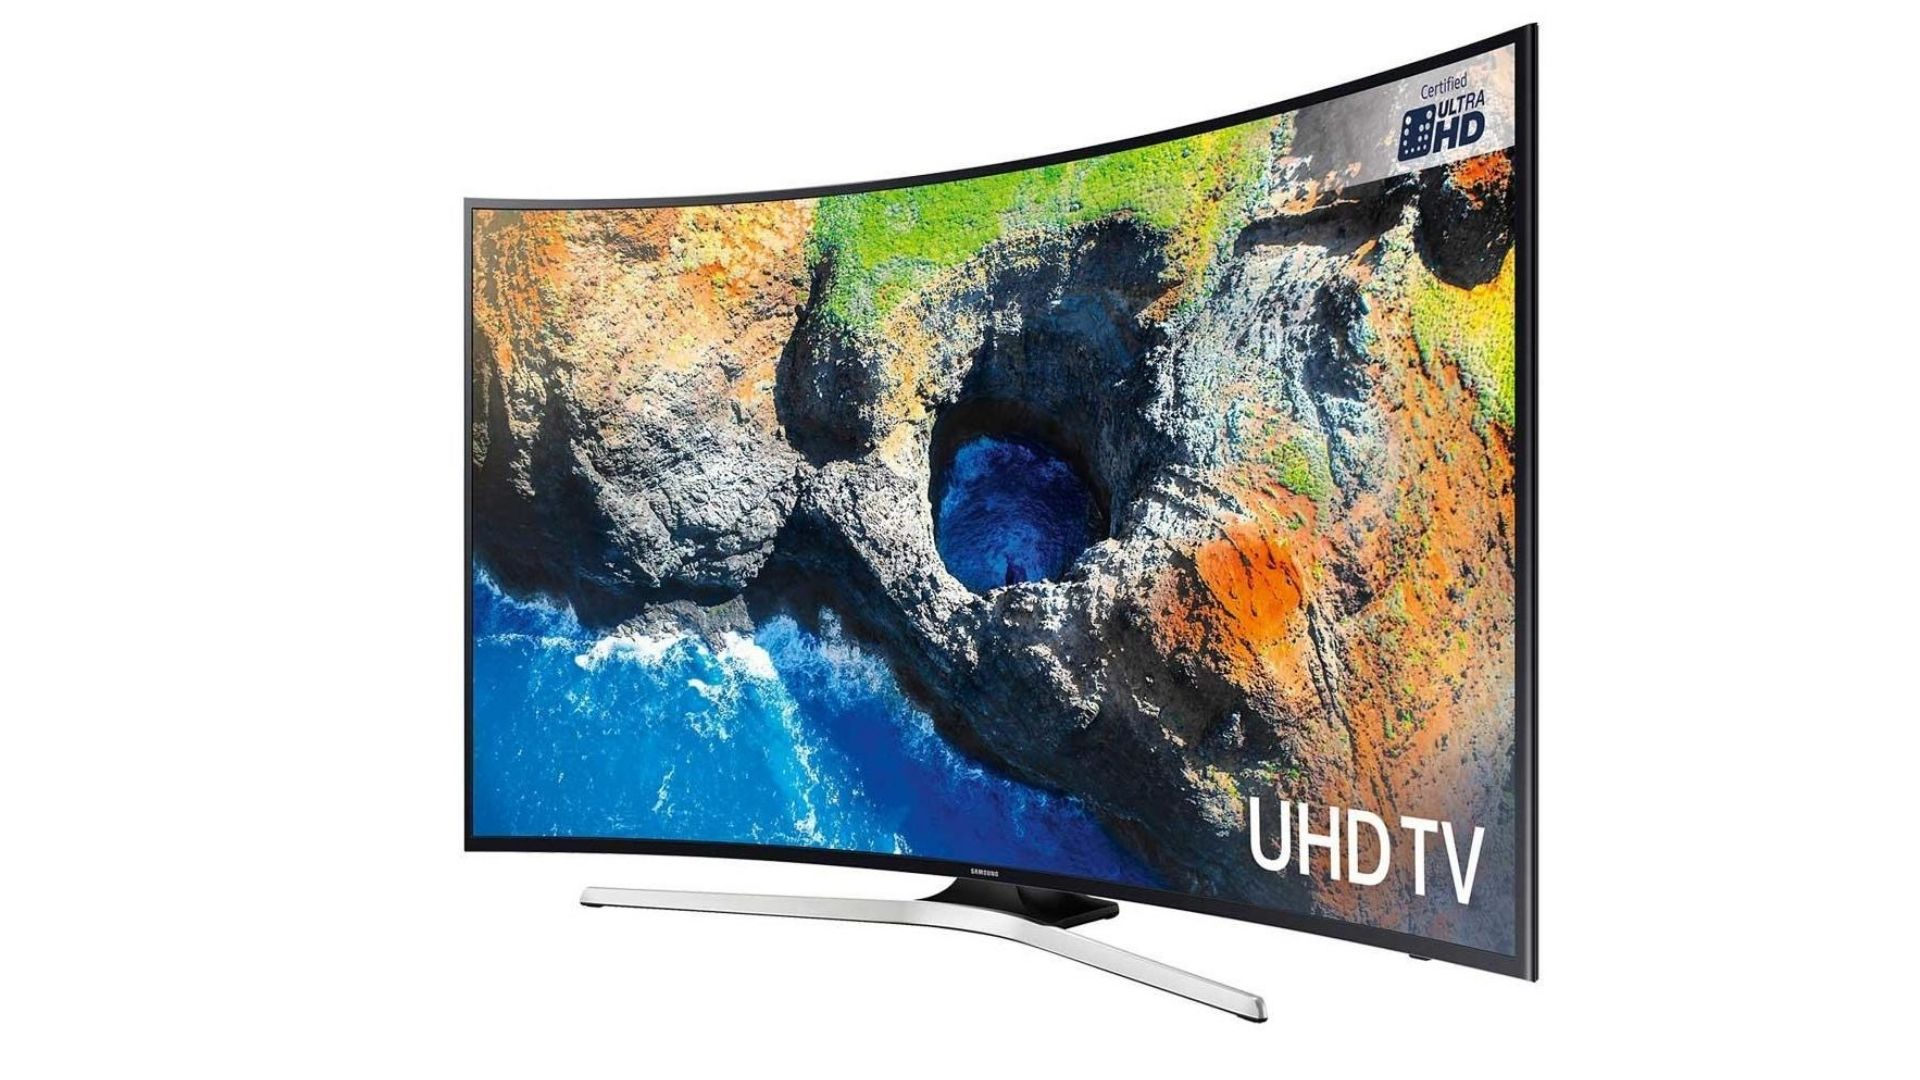 The best cheap TV deals on Black Friday 2017 4K TVs for any bud